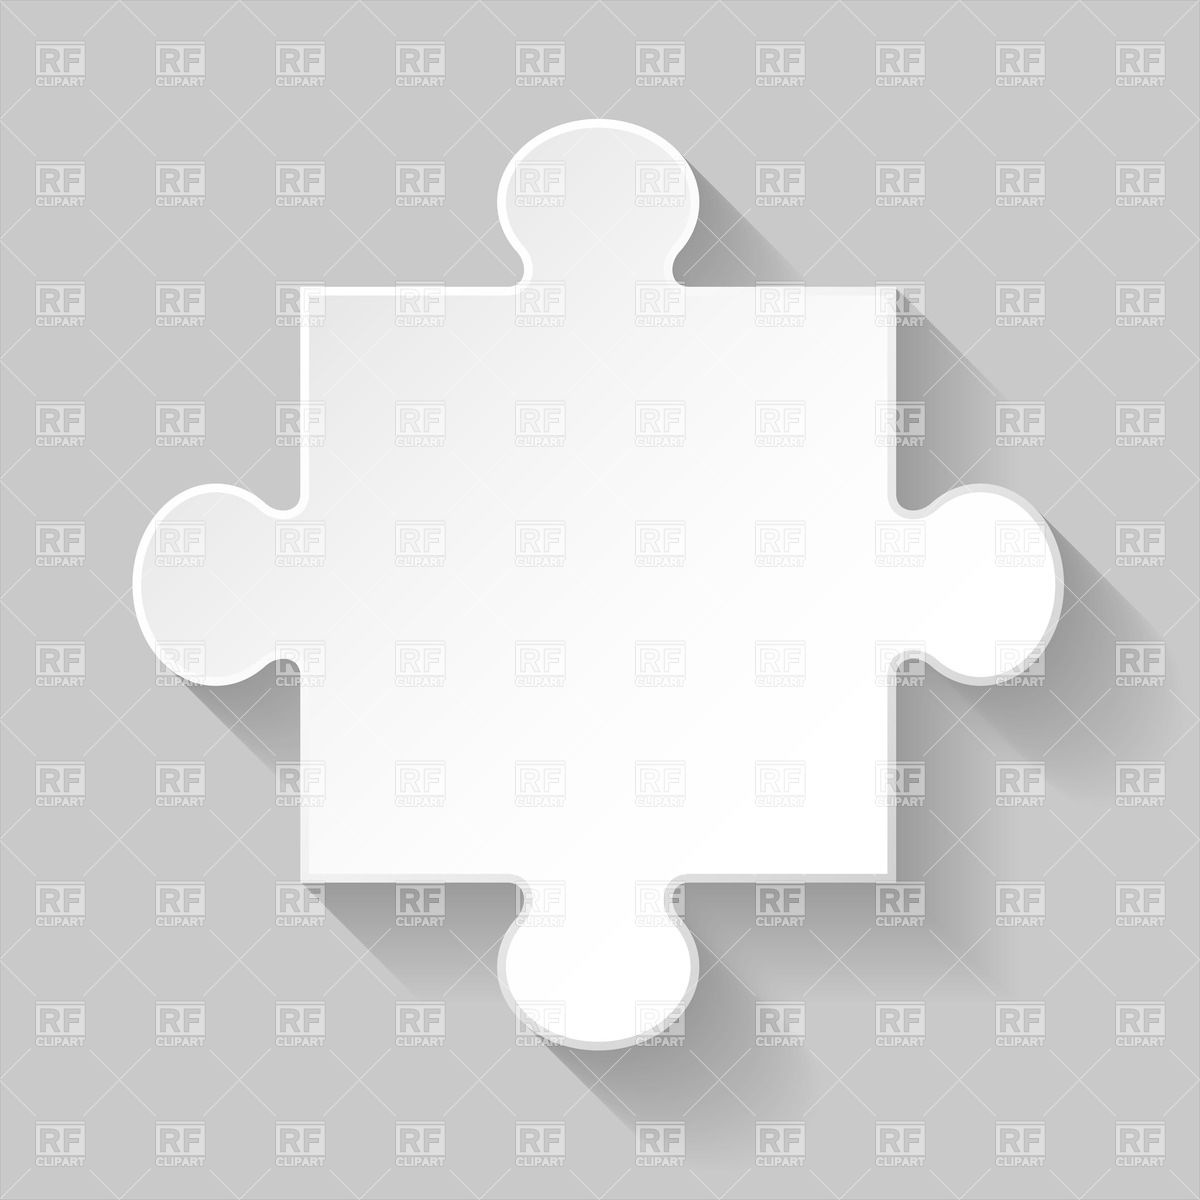 White puzzle element with shadow on grey background Vector Image.